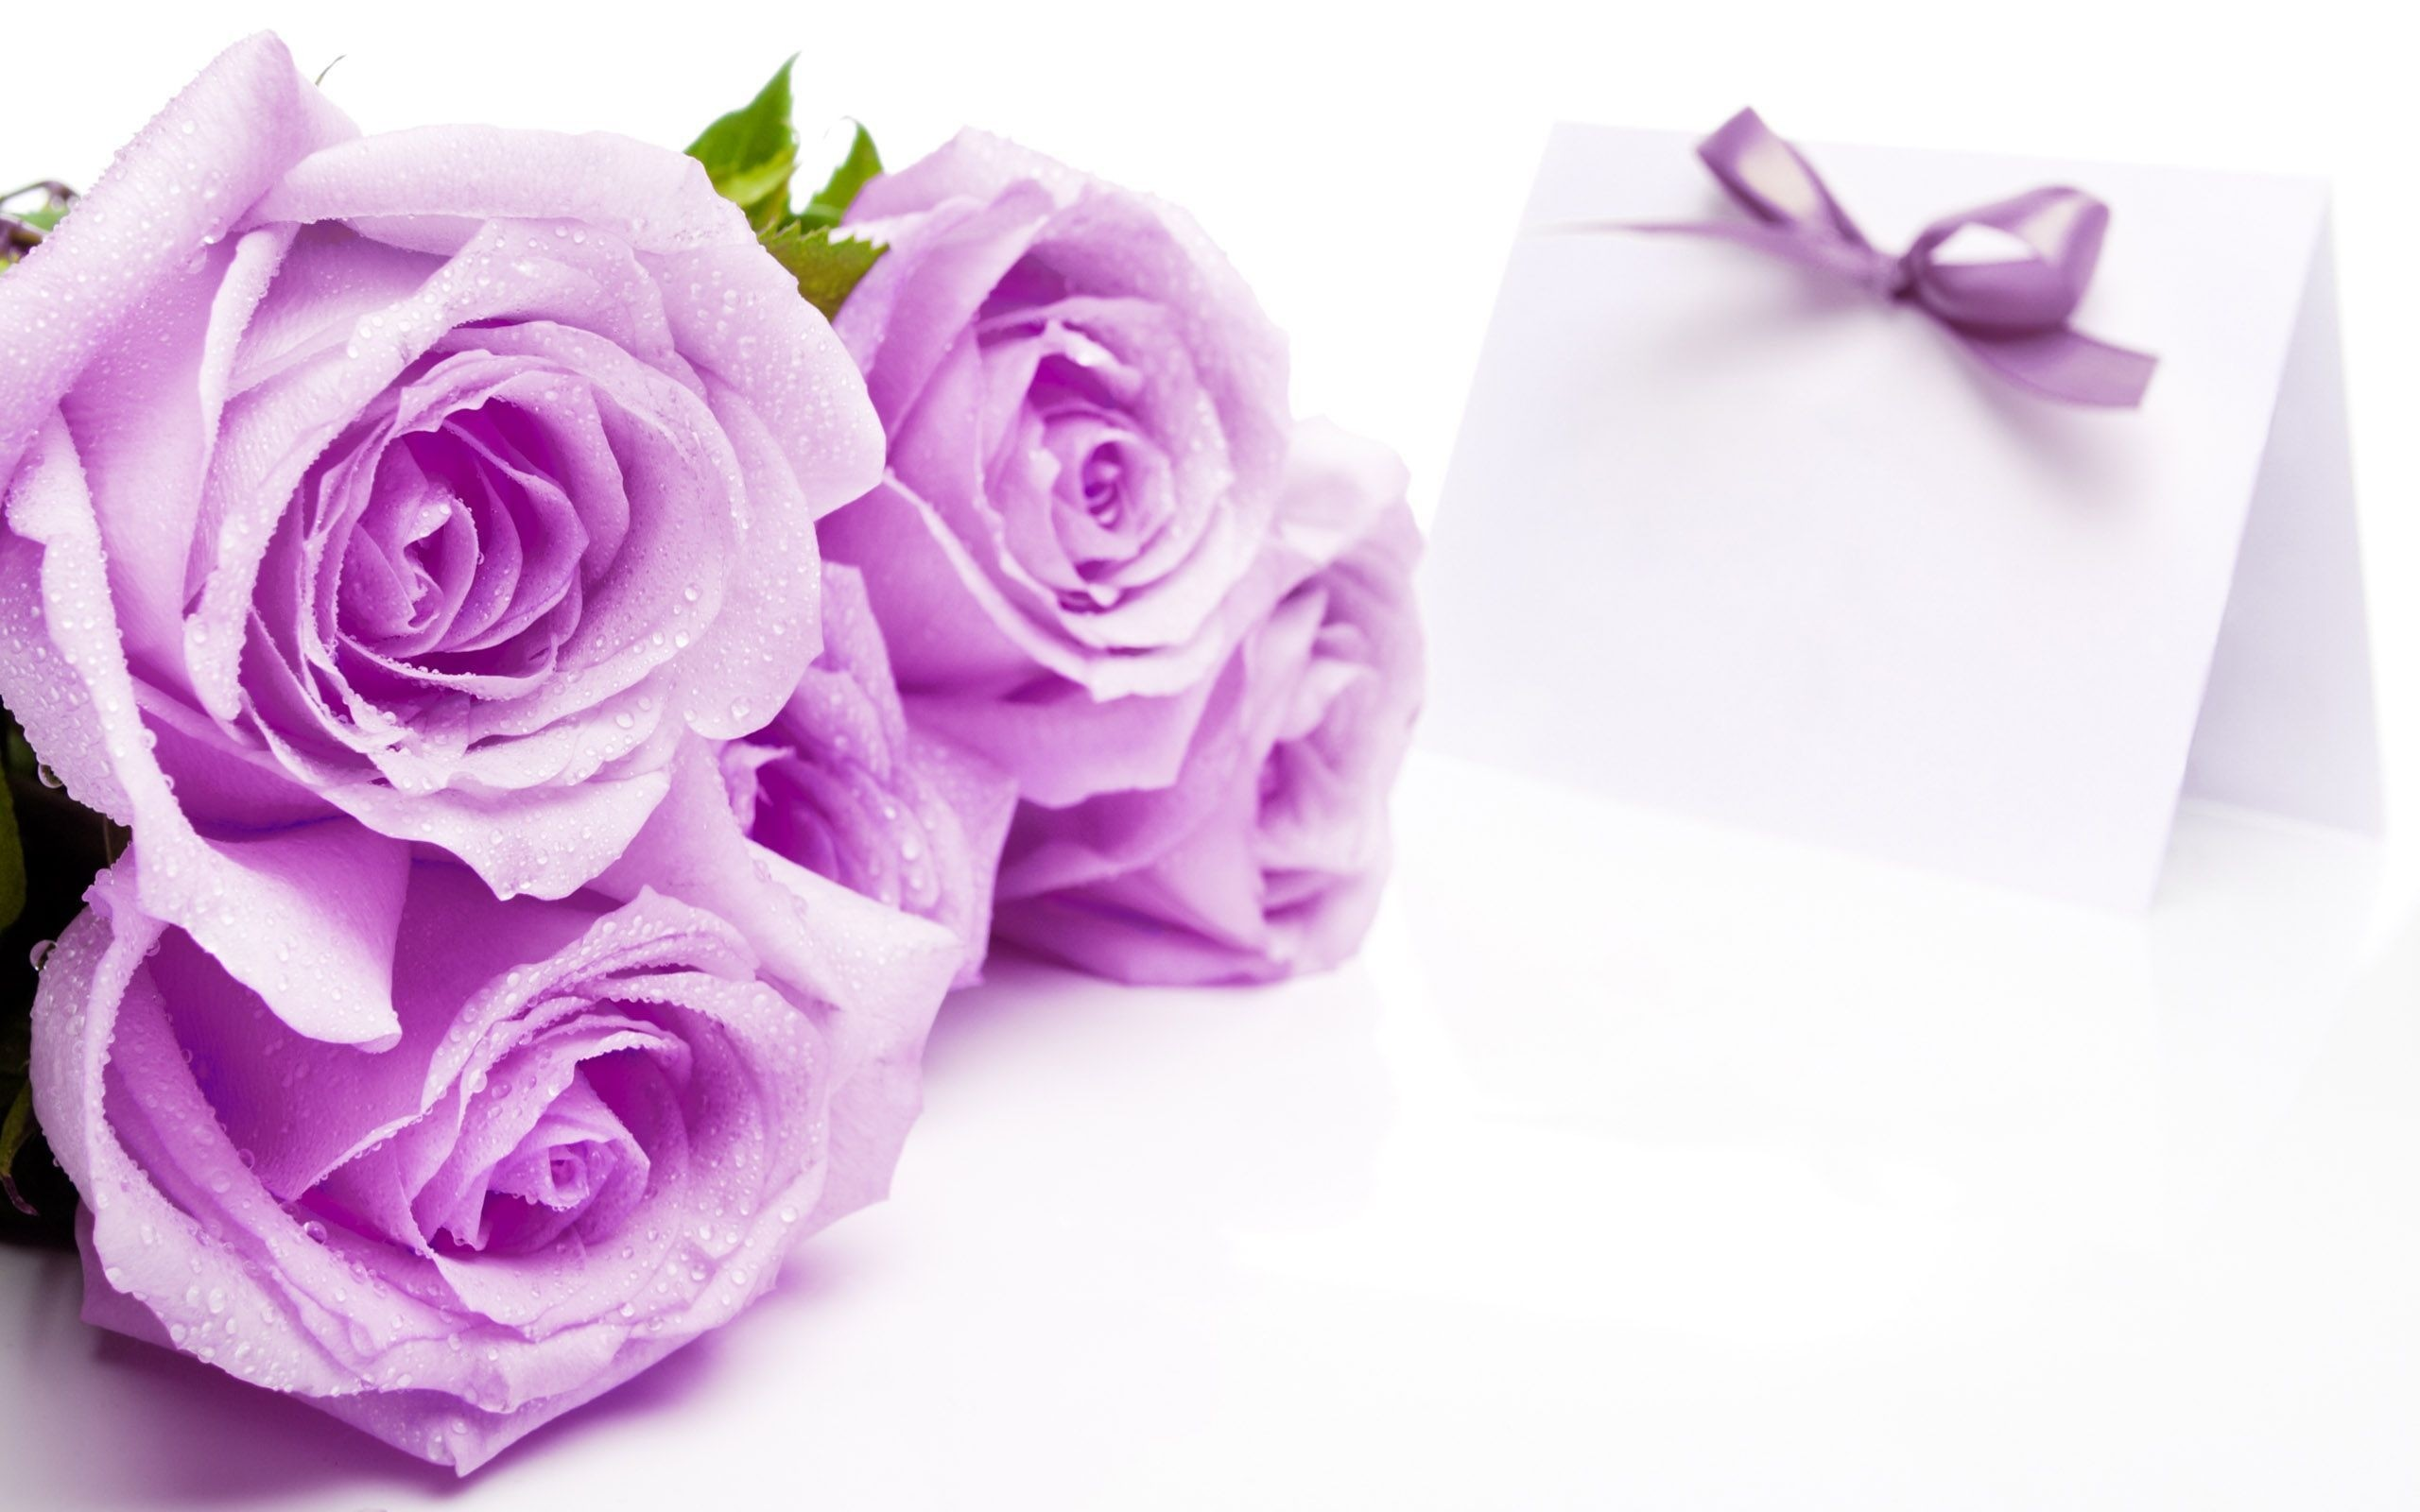 New Wallpaper of love with flowers – Wallpaper of love with flowers  Download New Wallpaper of